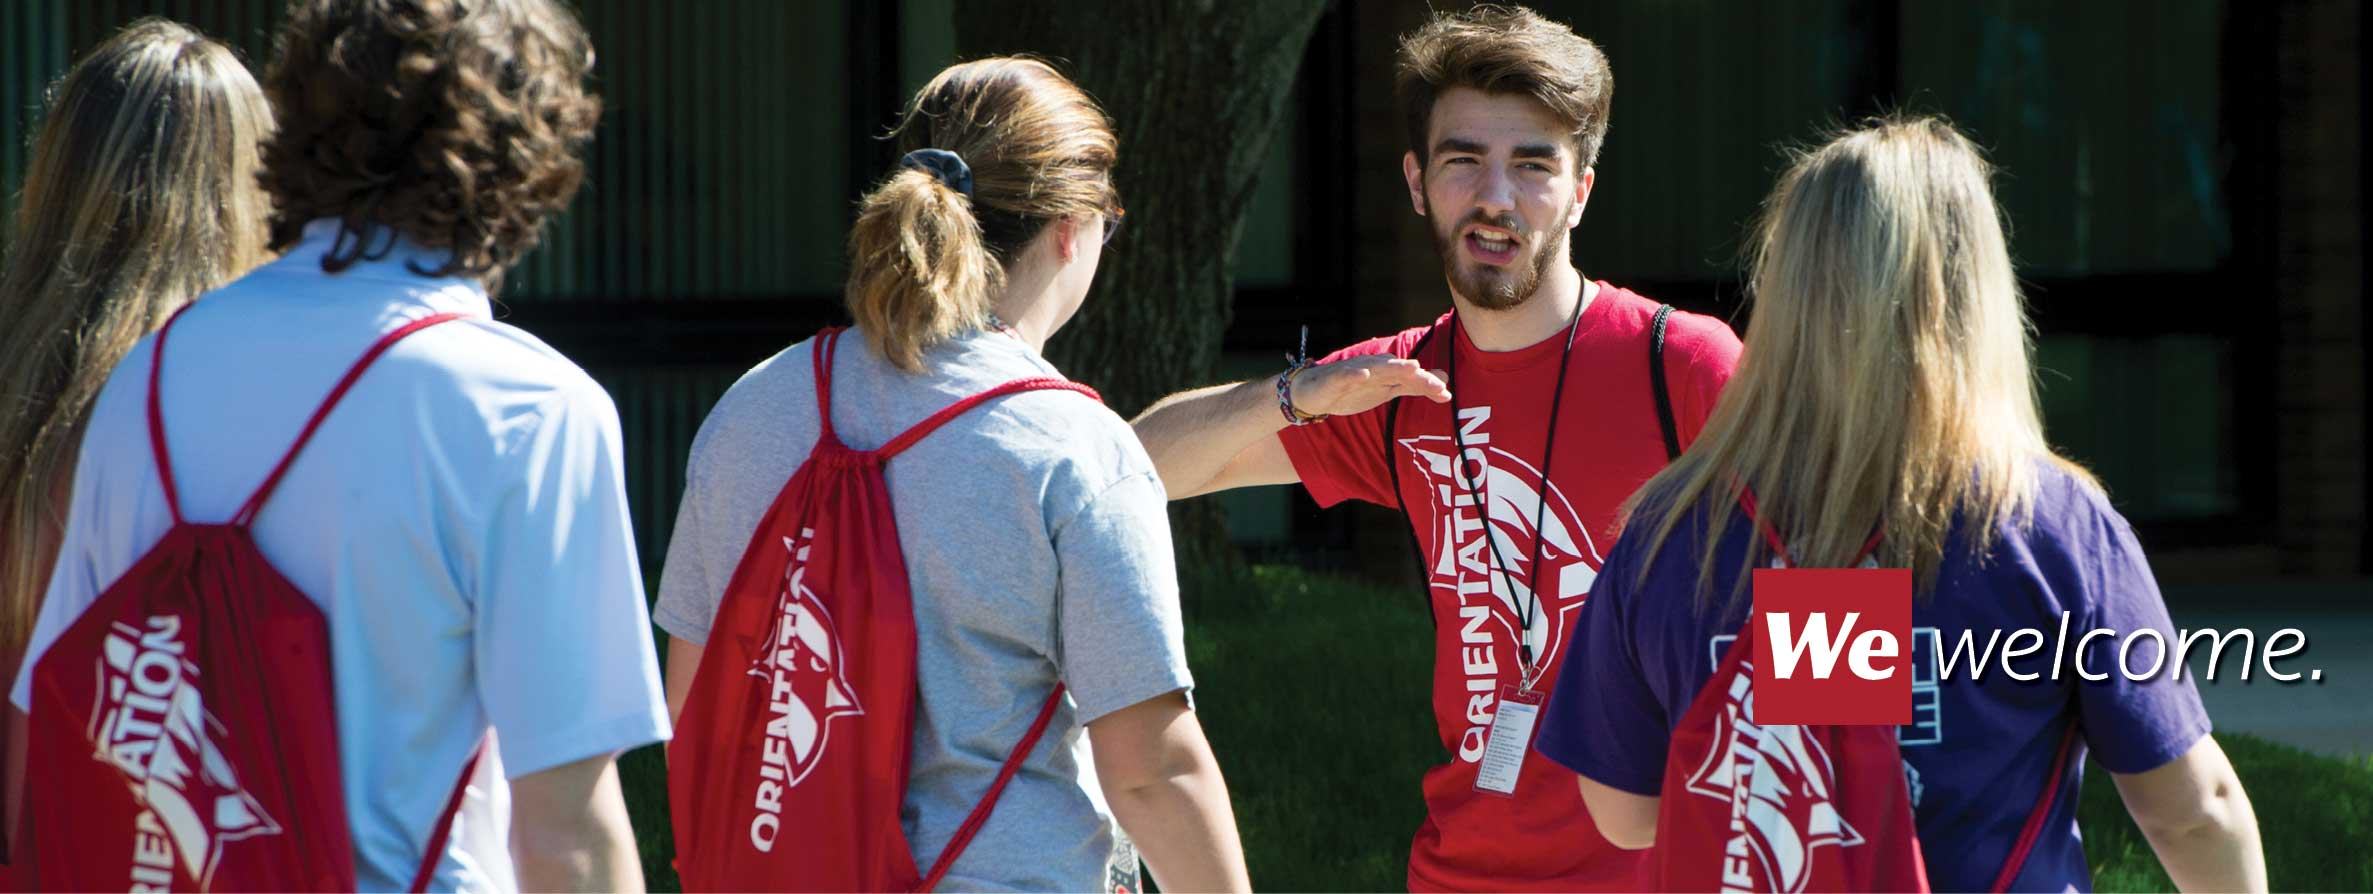 An orientation leader talks to students with orientation backpacks on their backs. We welcome.